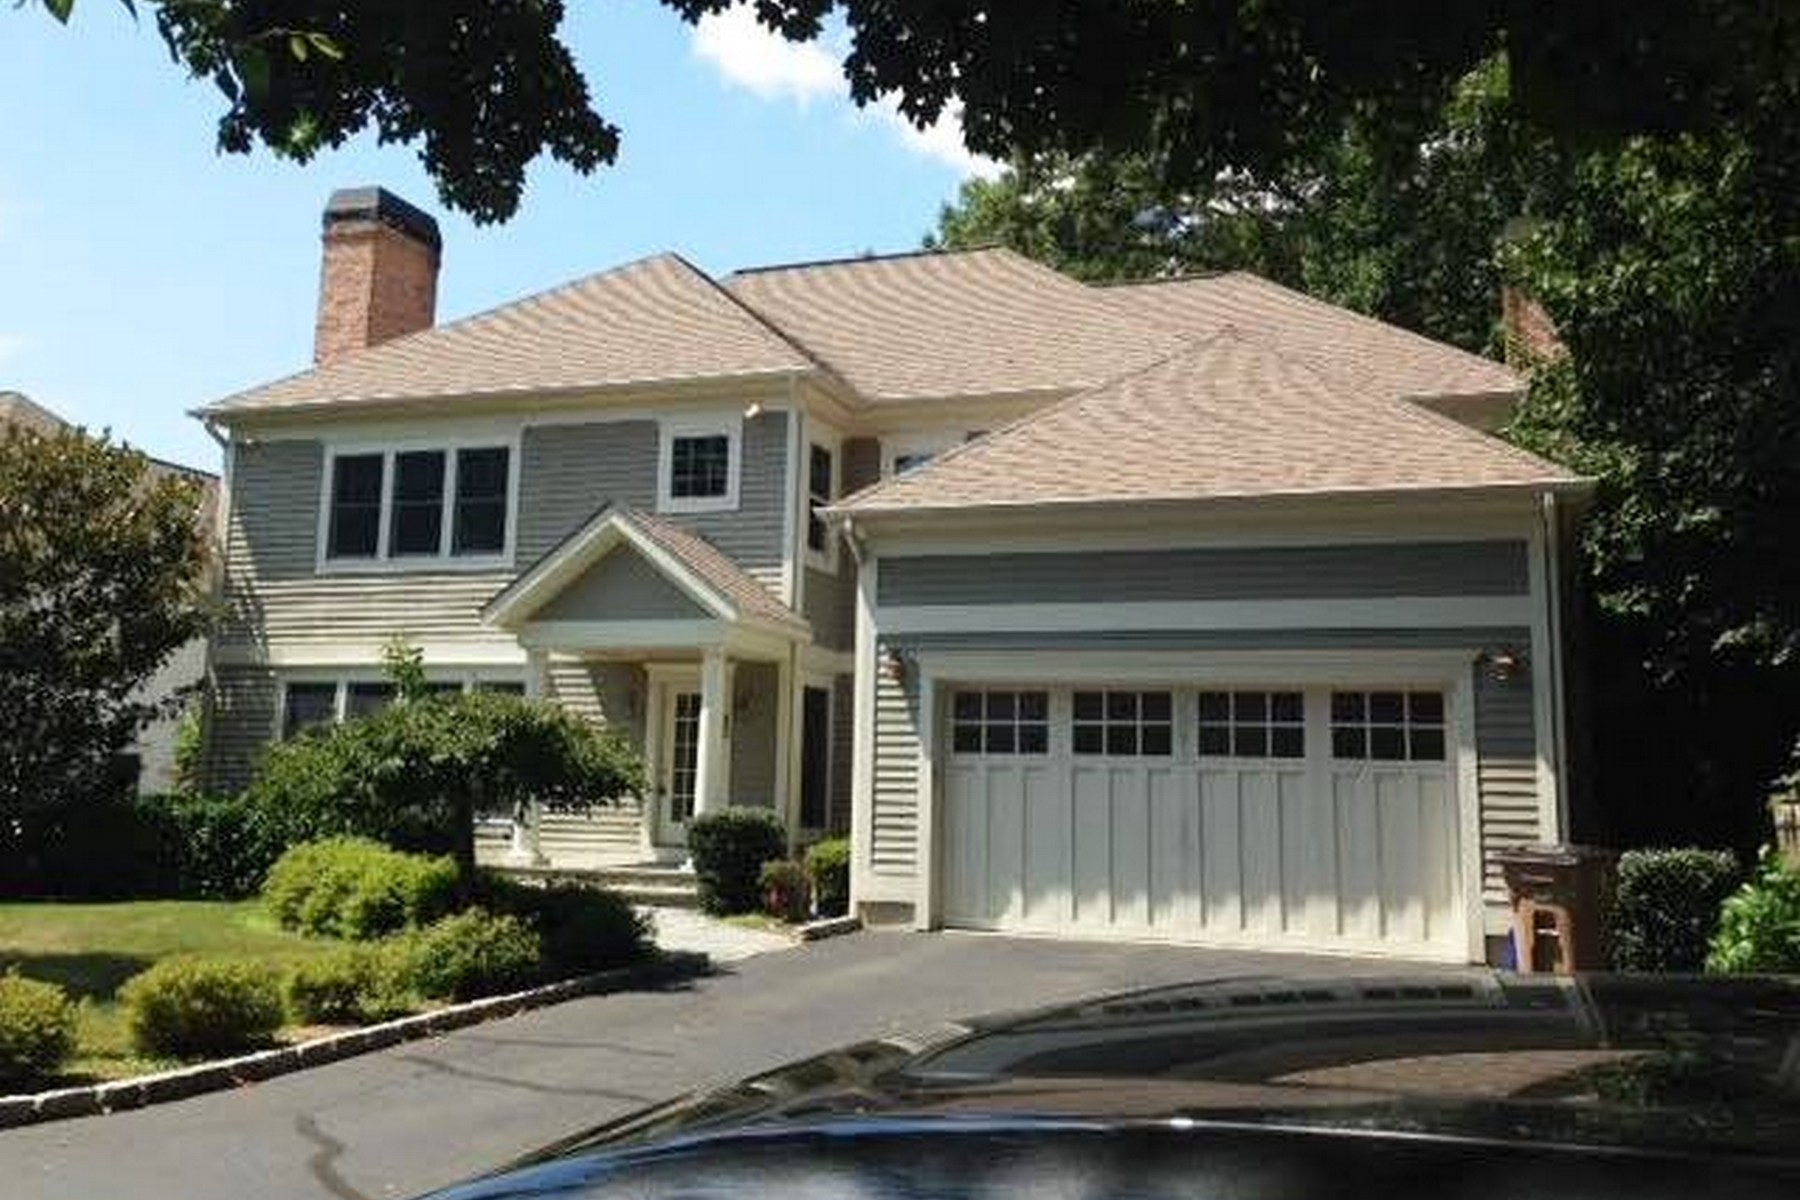 Single Family Home for Sale at Turn of River Colonial 20 Mid River Run Road Stamford, Connecticut 06902 United States